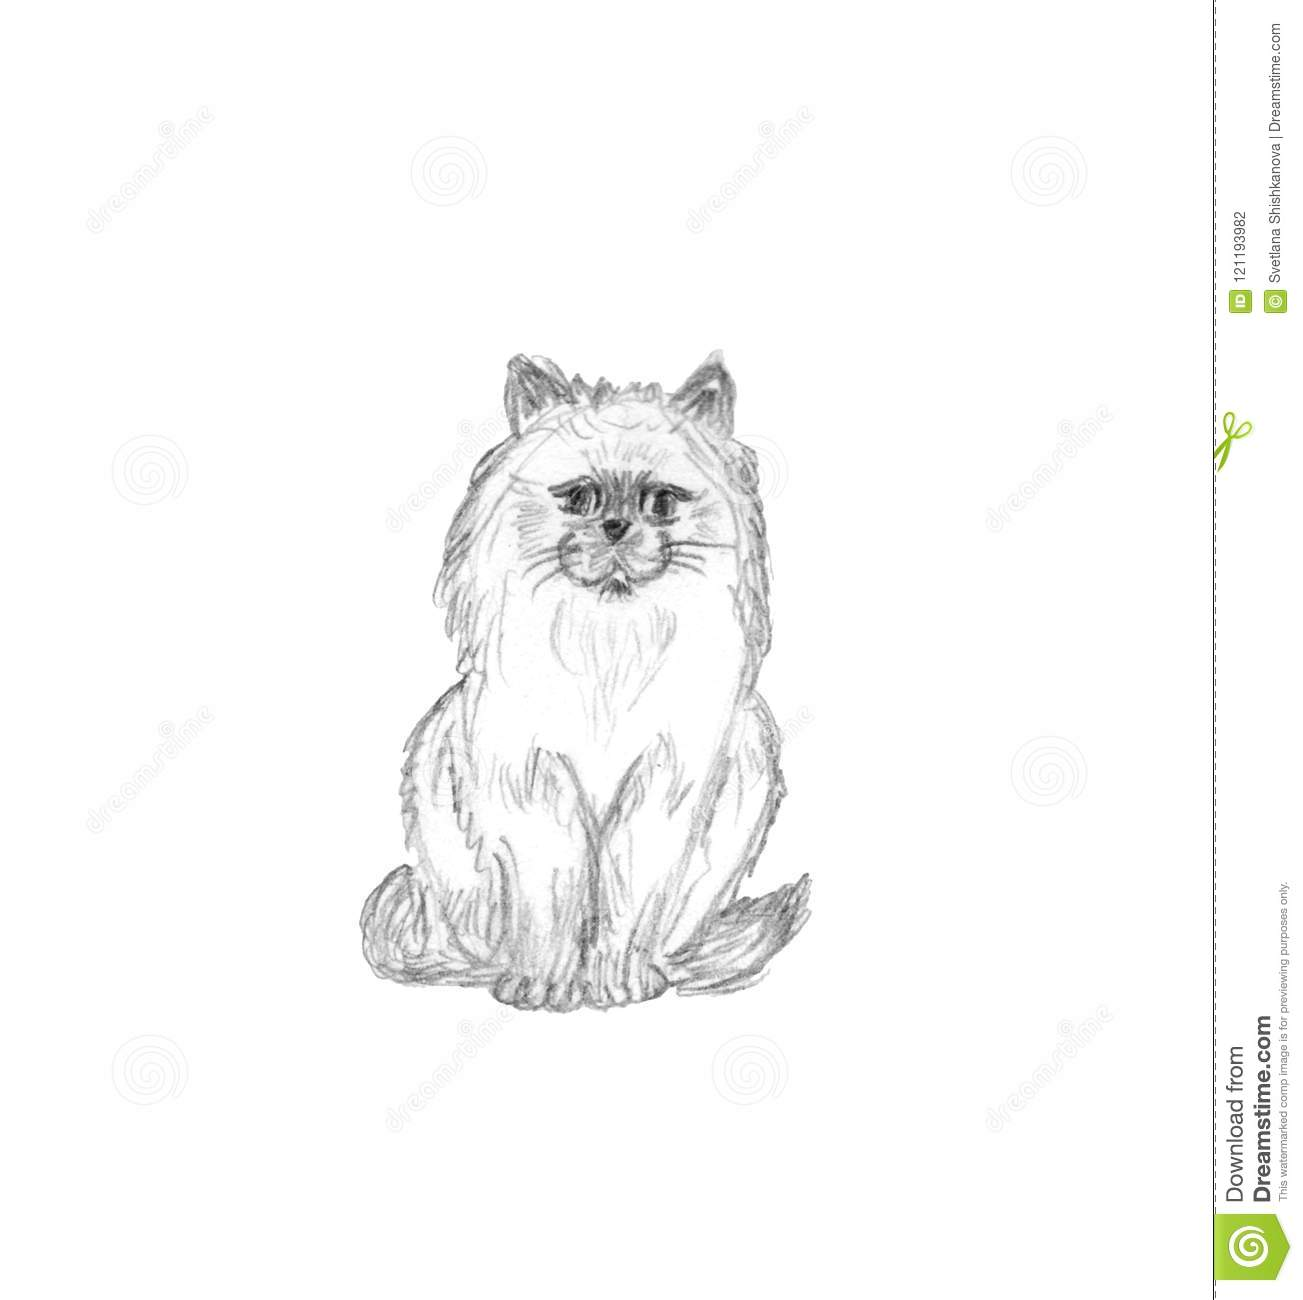 Sitting fluffy cat isolated on white background pencil sketch